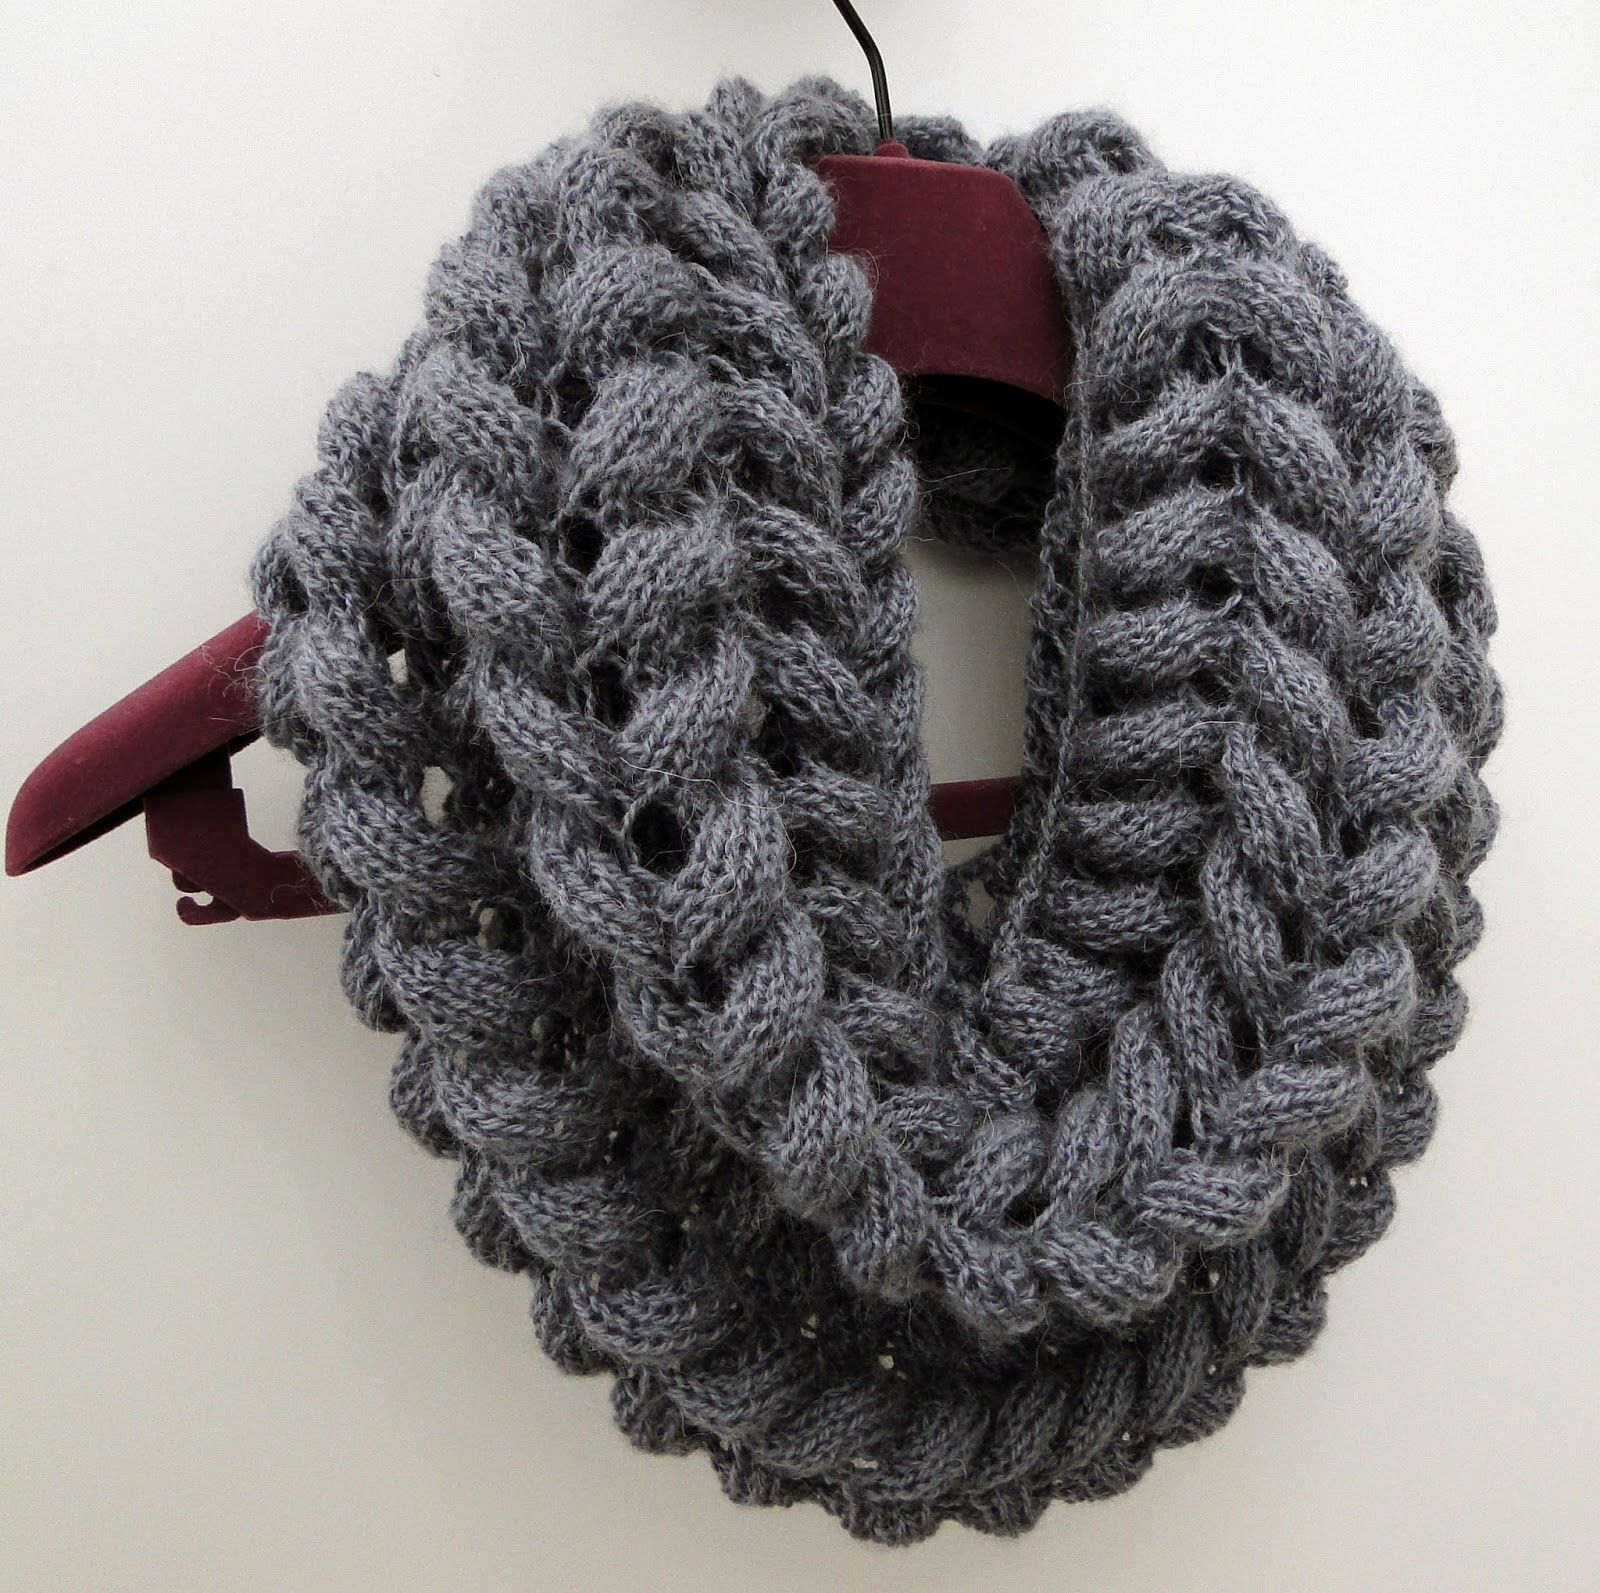 Scarf cowl knitting pattern c pinterest knitting patterns scarf cowl knitting pattern bankloansurffo Choice Image